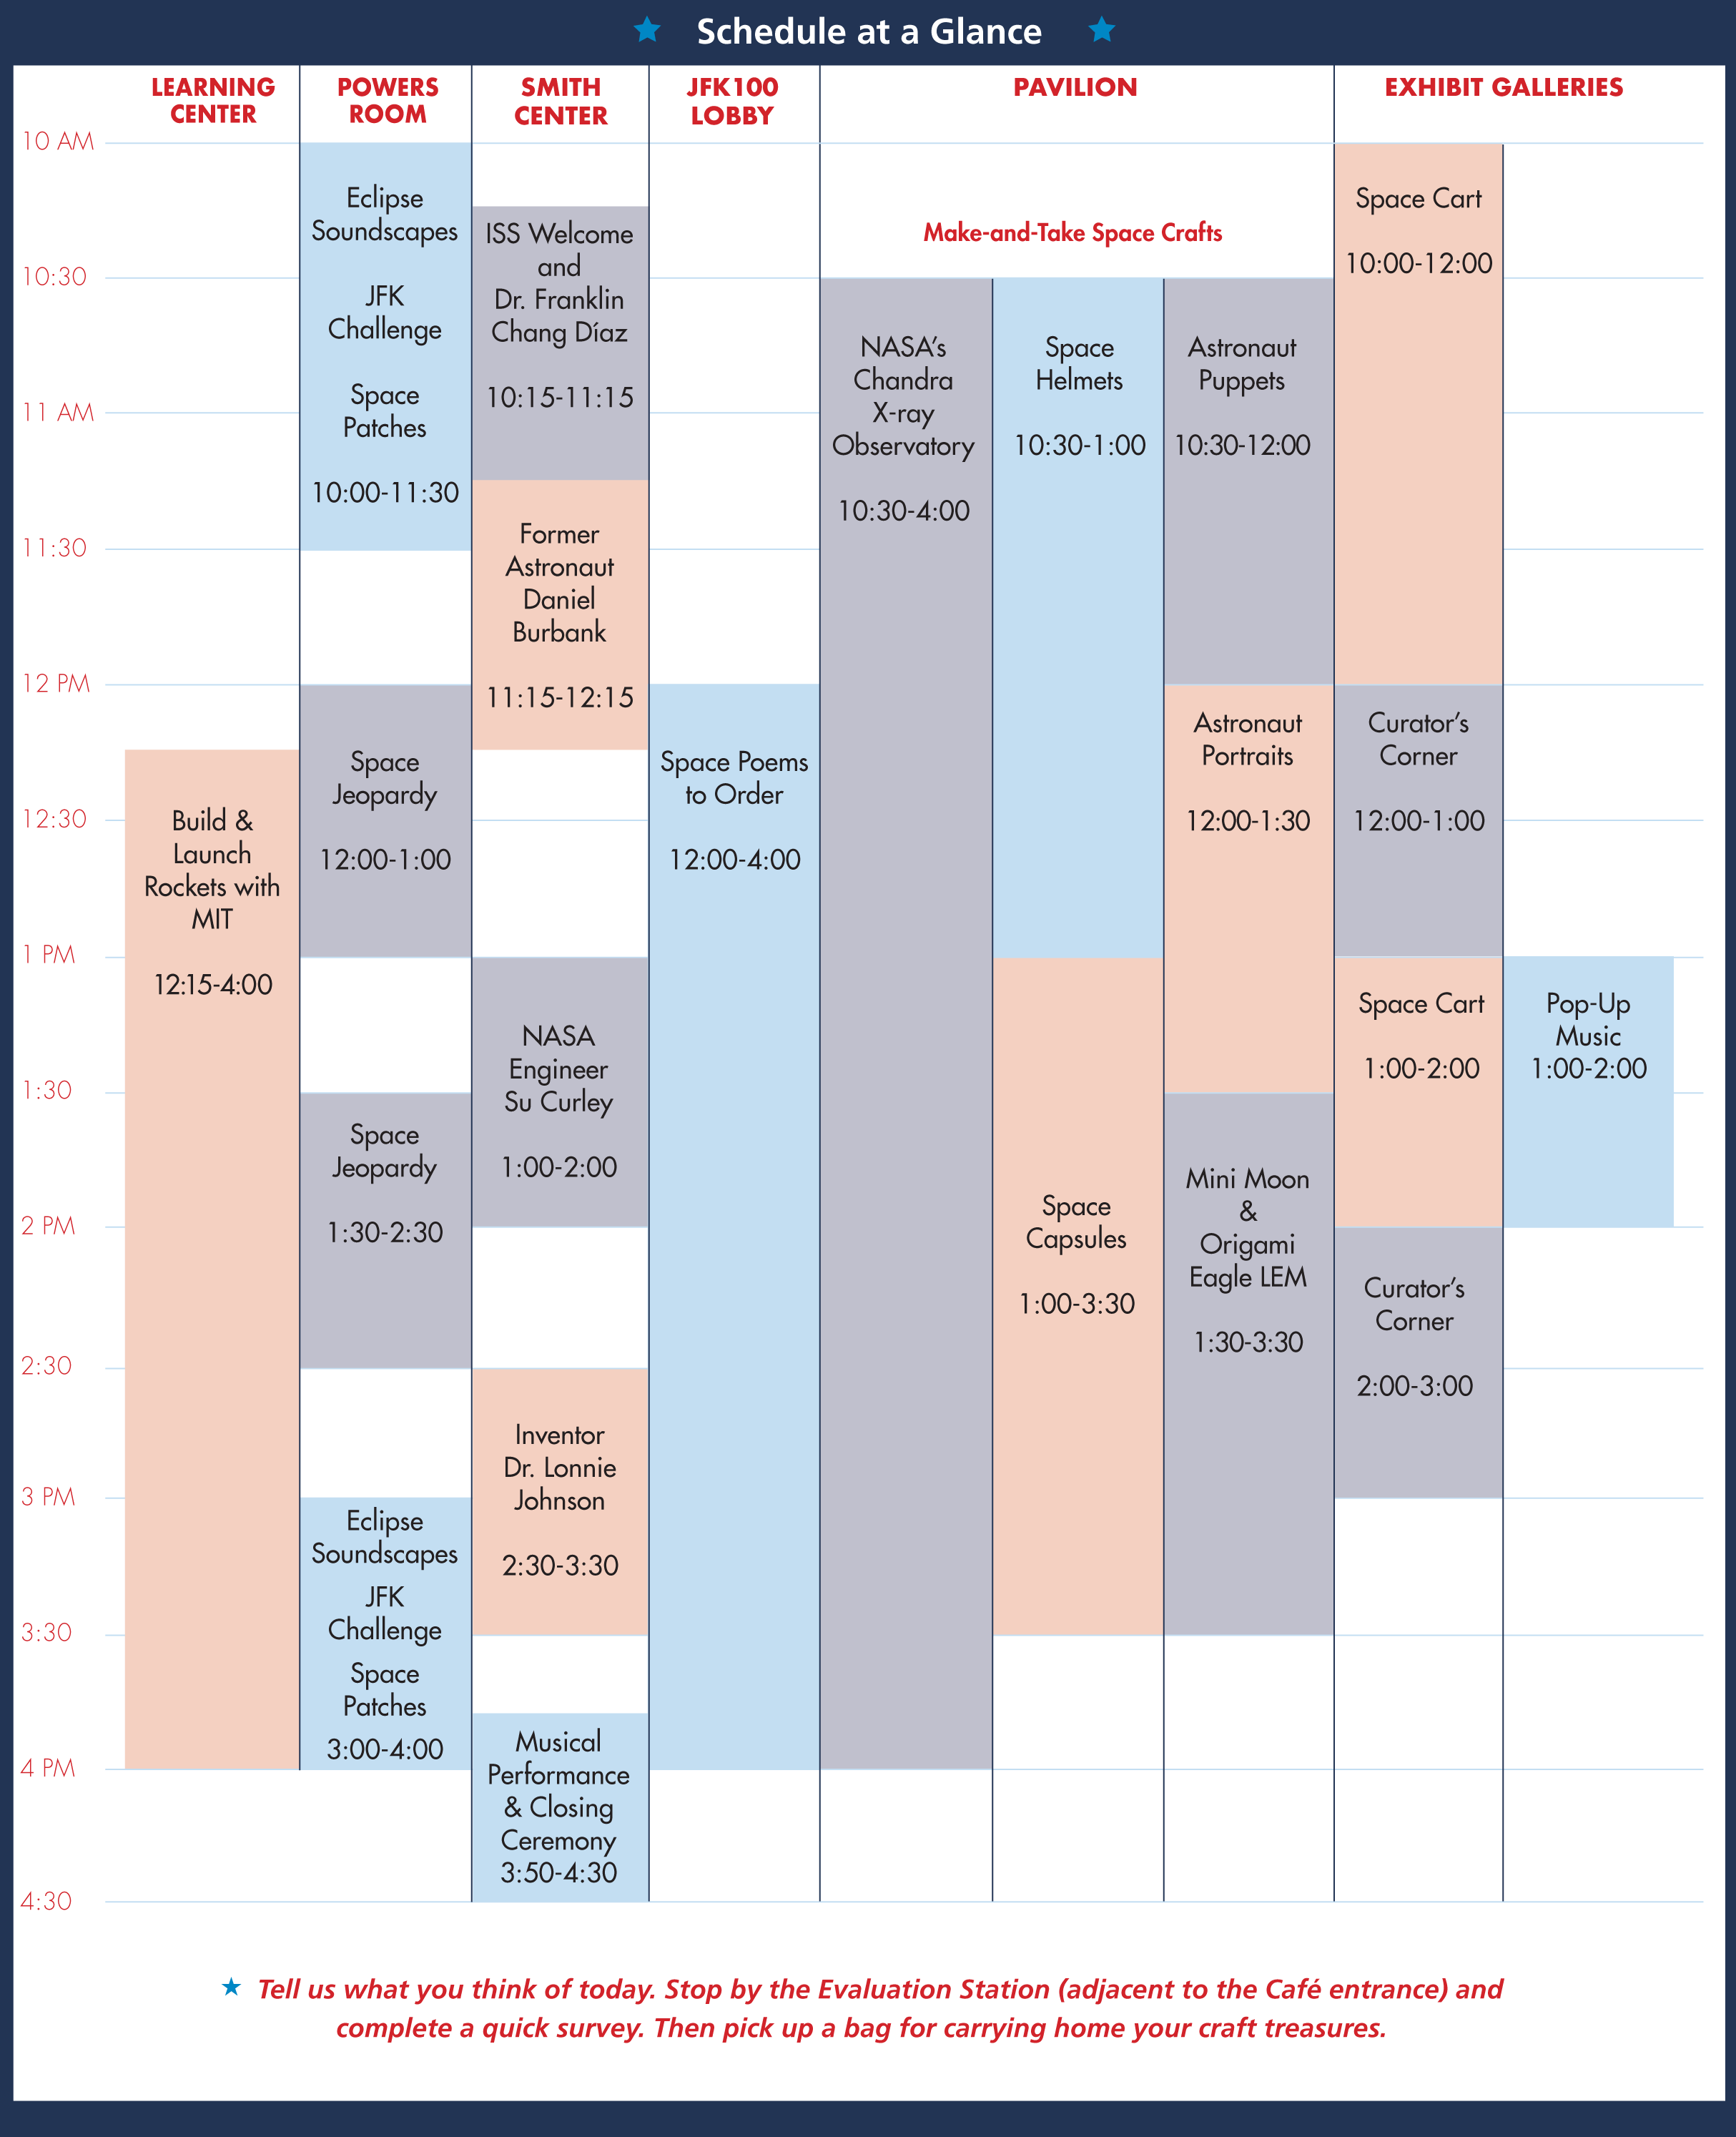 Image of JFK Space Fest Schedule at a Glance